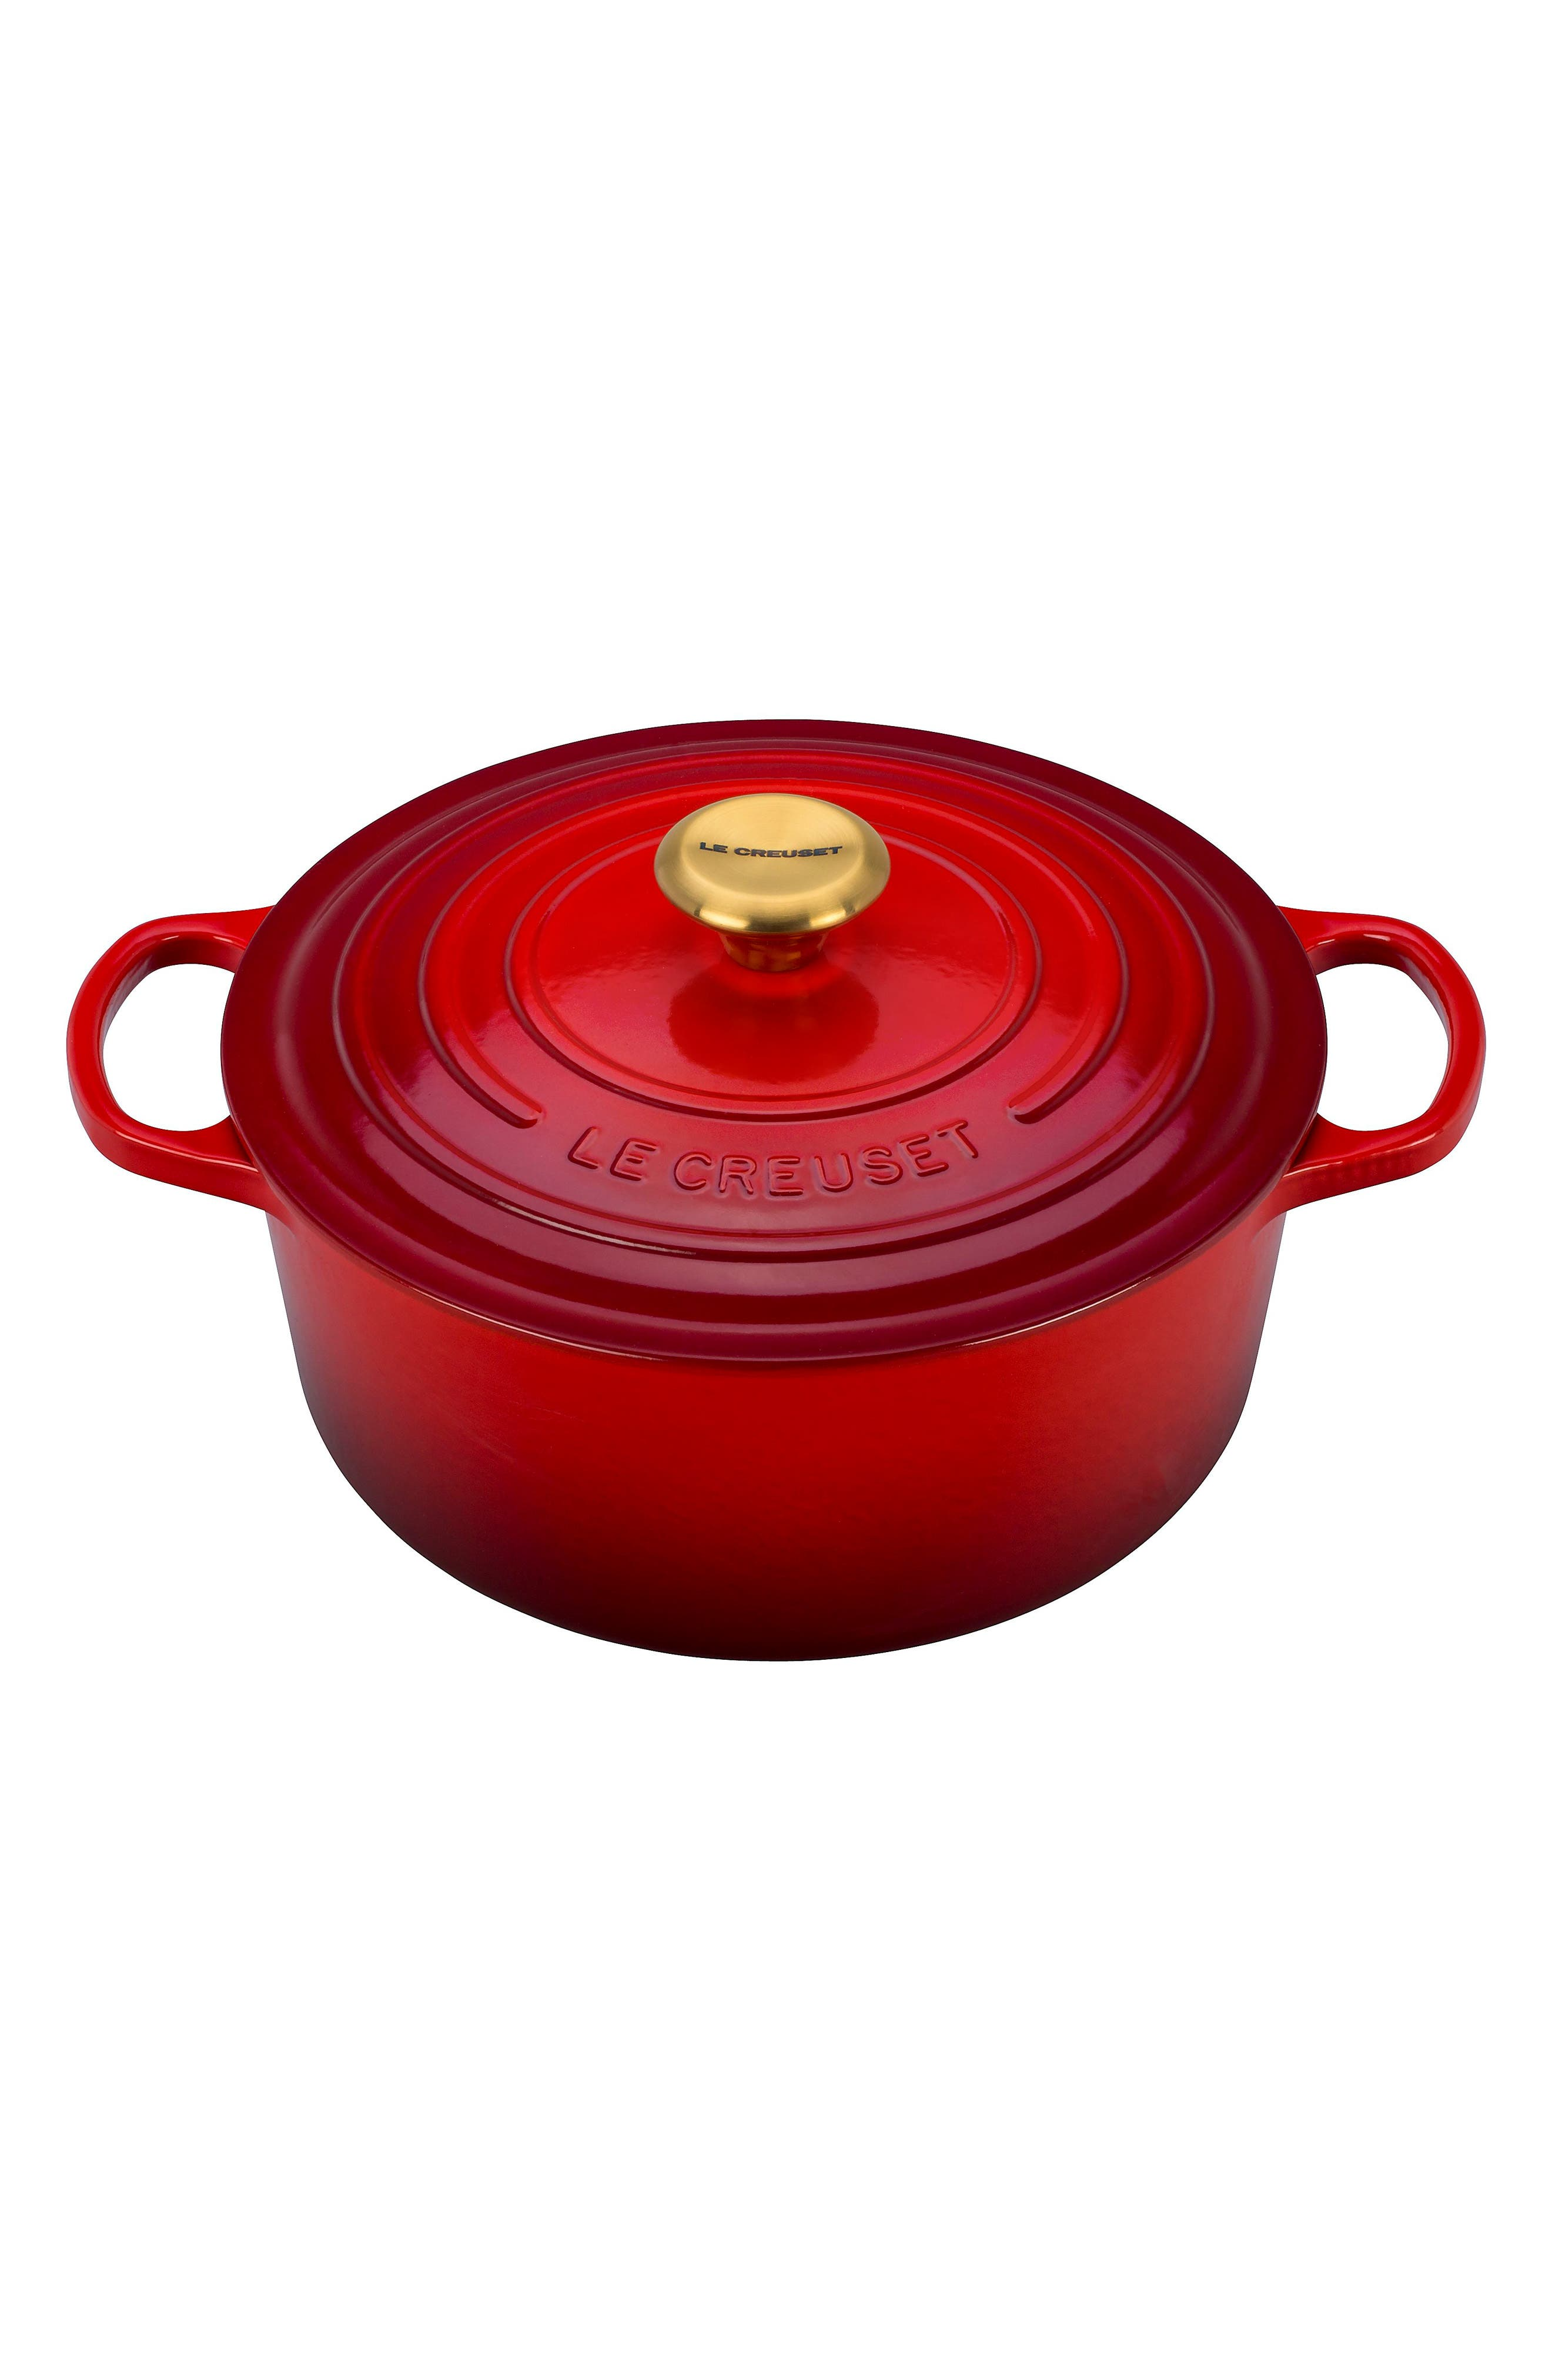 Gold Knob Collection 5 1/2 Quart Round French/Dutch Oven,                             Alternate thumbnail 2, color,                             CHERRY/CERISE GOLD